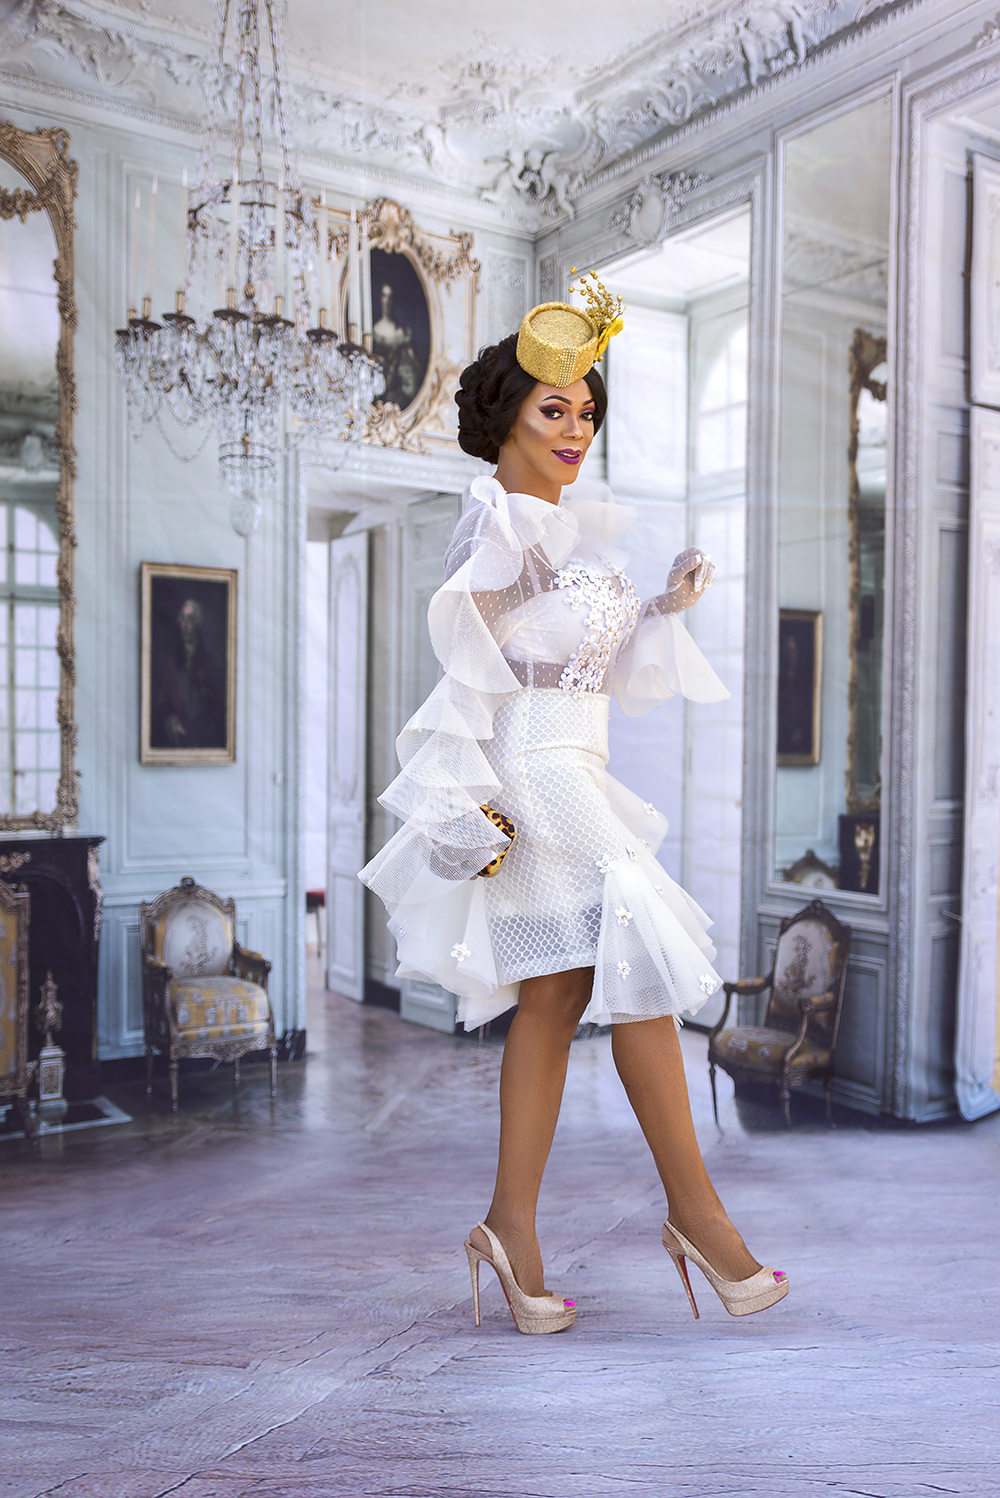 Little White Dress + Gold Fascinator, an Easter Look